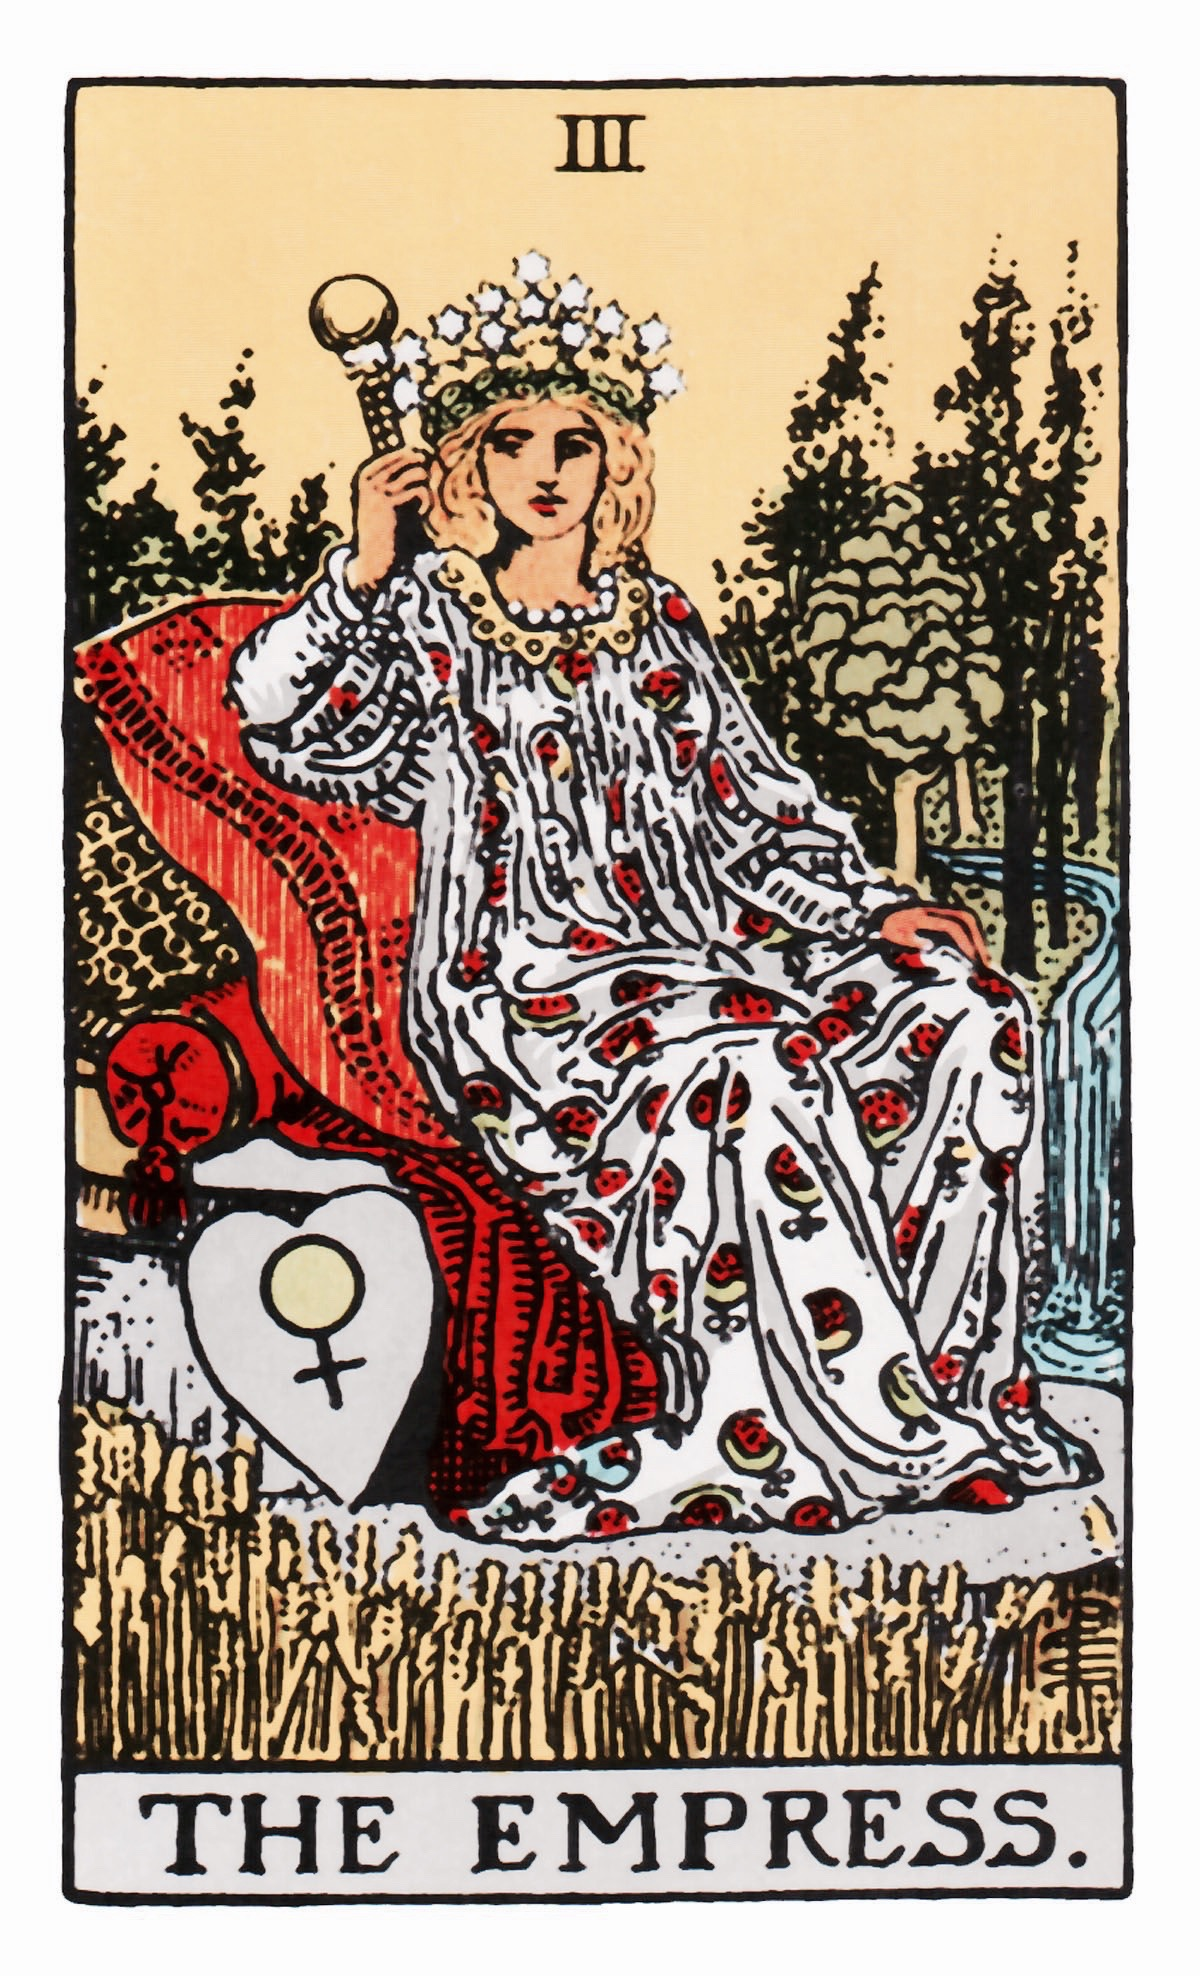 The Empress Tarot Birth Card (Rider-Waite Tarot Deck)